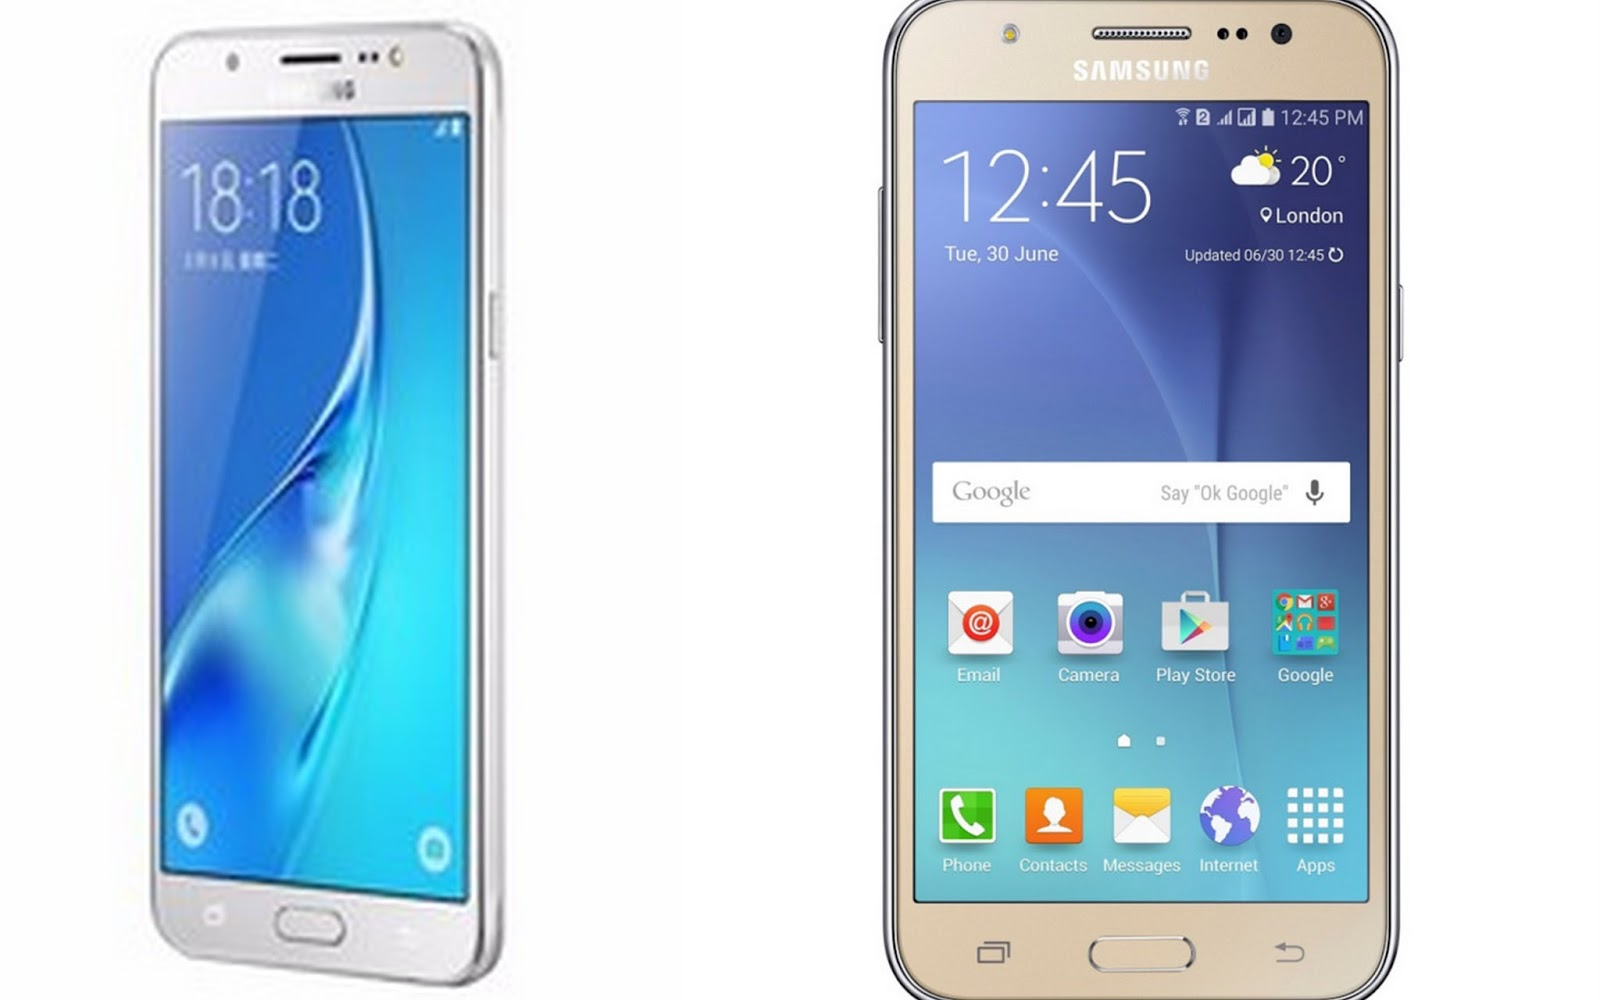 Samsung Galaxy J7 2015 vs 2016